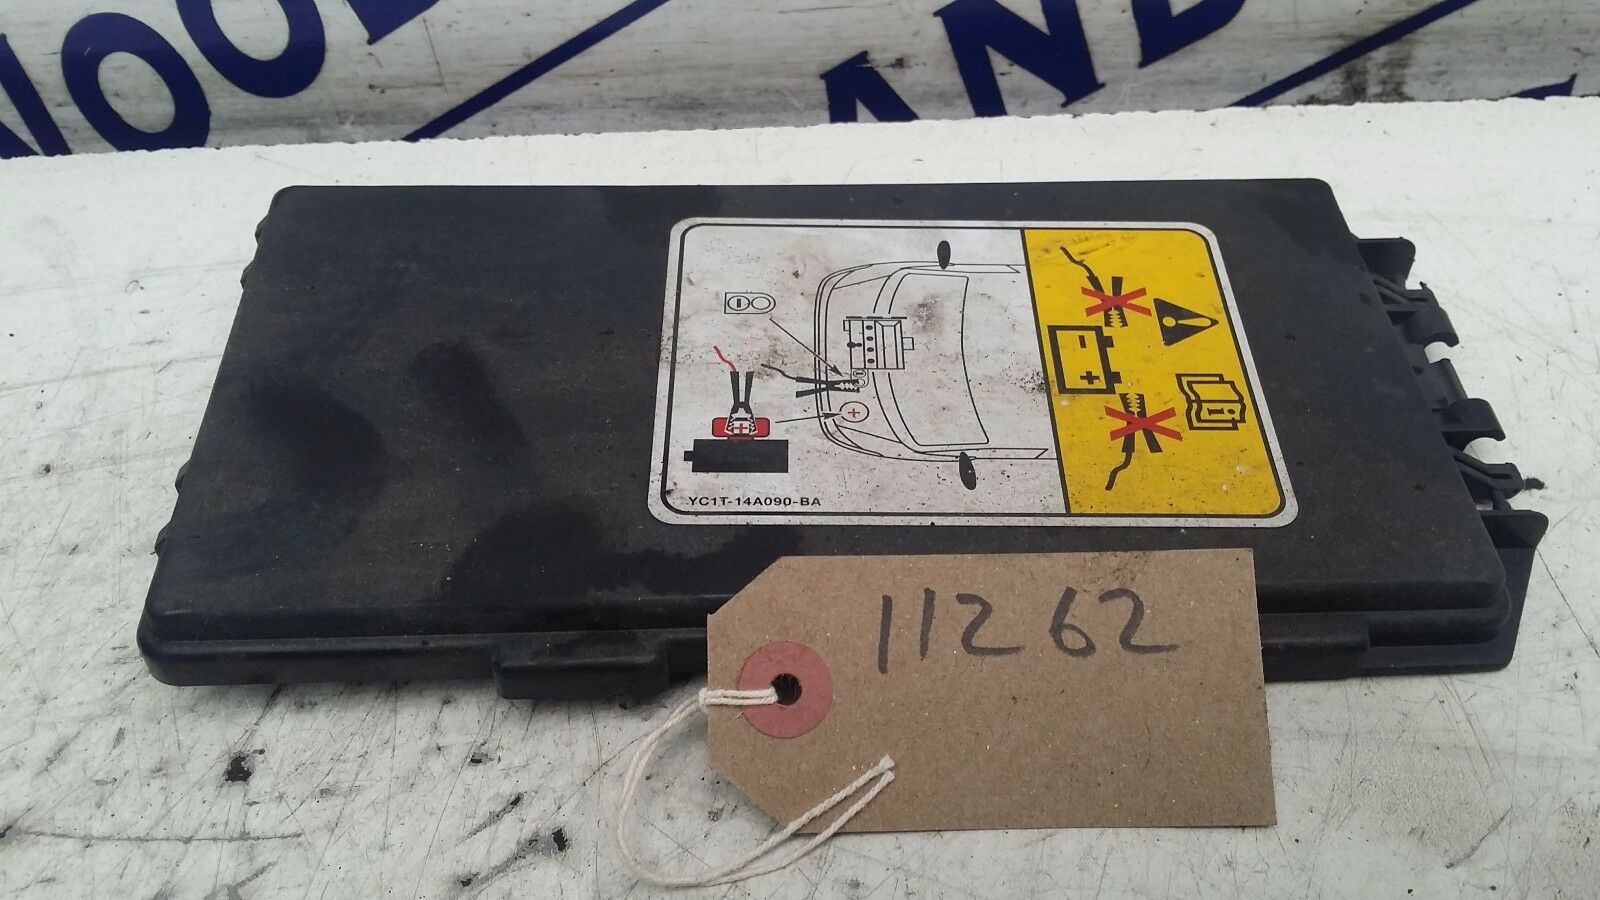 Ford Transit Fuse Box Cover Lid Mk 6 2000 To 2006 1500 Picclick Uk Mk6 1 Of 1only Available